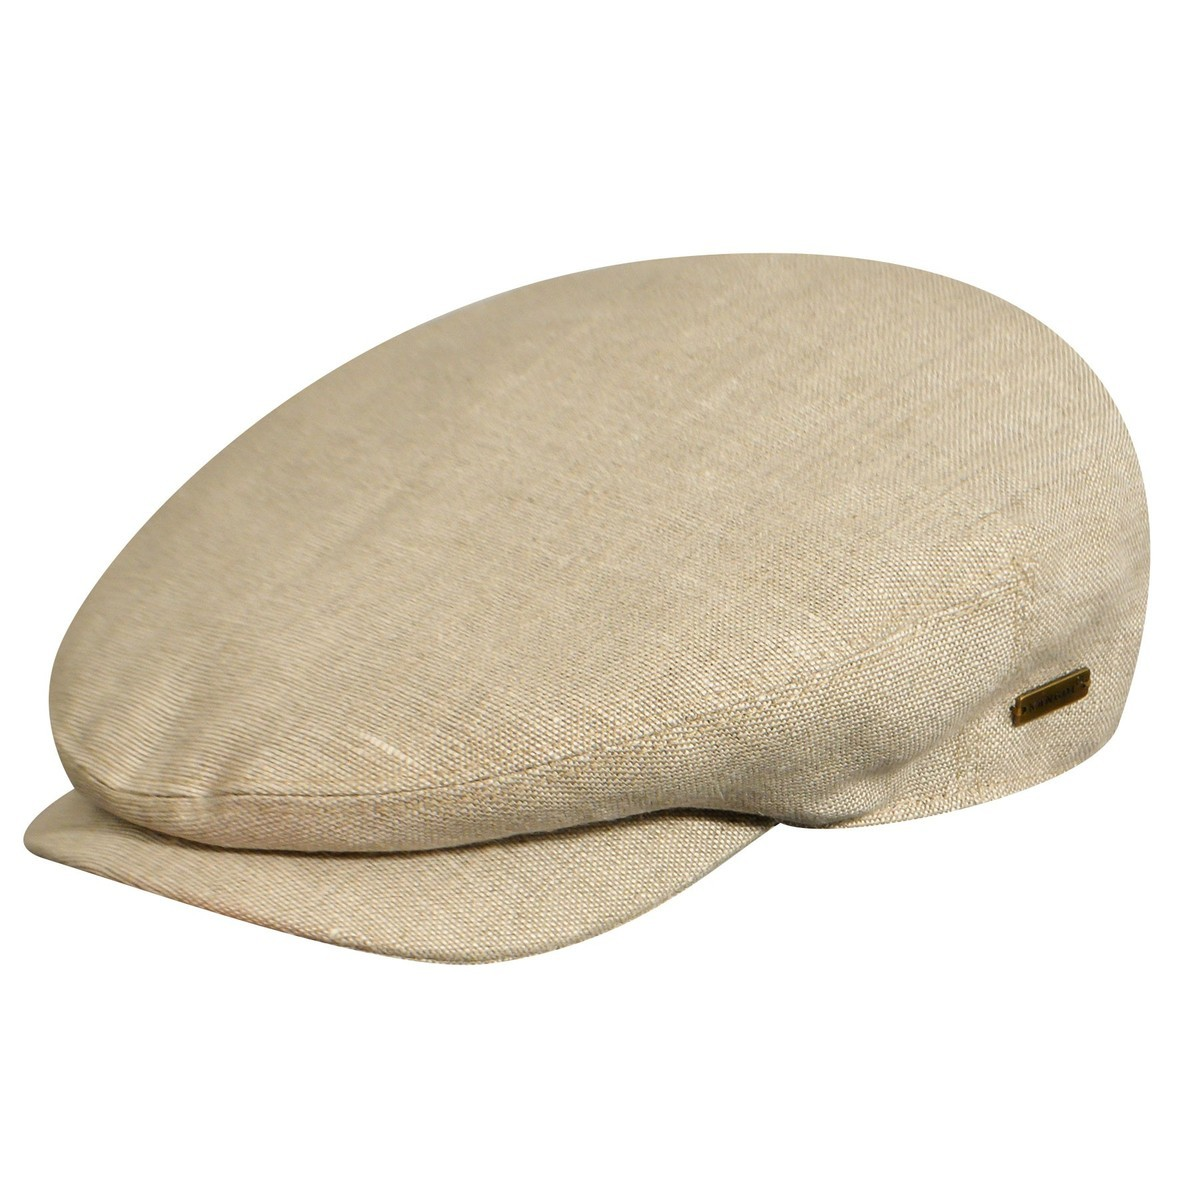 Kangol カンゴール British Peebles Tan Ivy Caps & Flat Caps 帽子 Tan